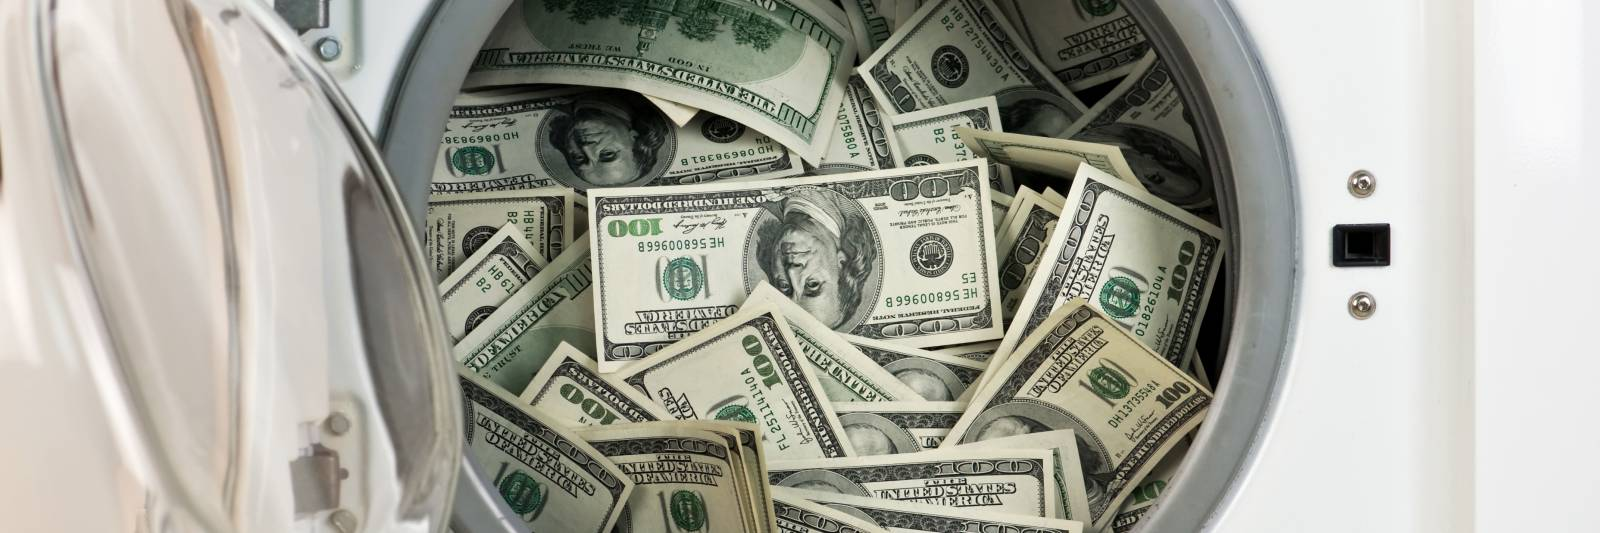 Oracle Provides Midsize Banks With Big Bank Money Laundering Protection